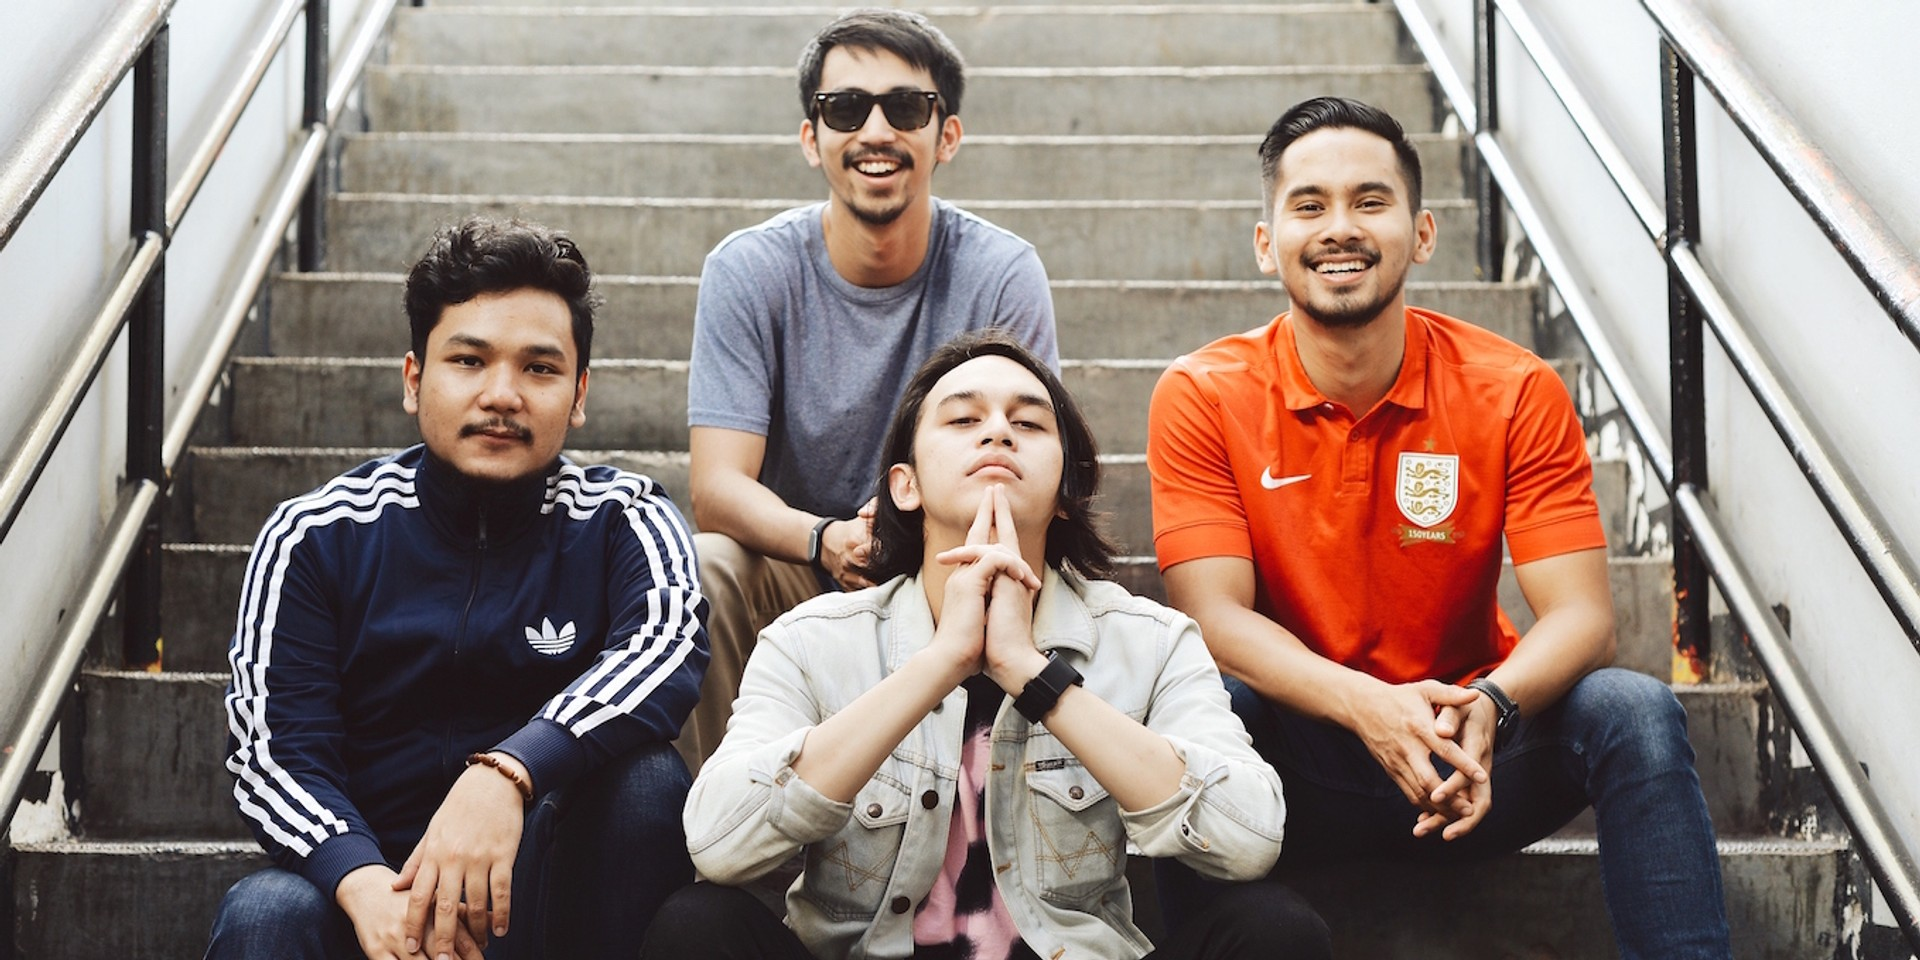 What is super reality according to the Indonesian rock band Purpla?